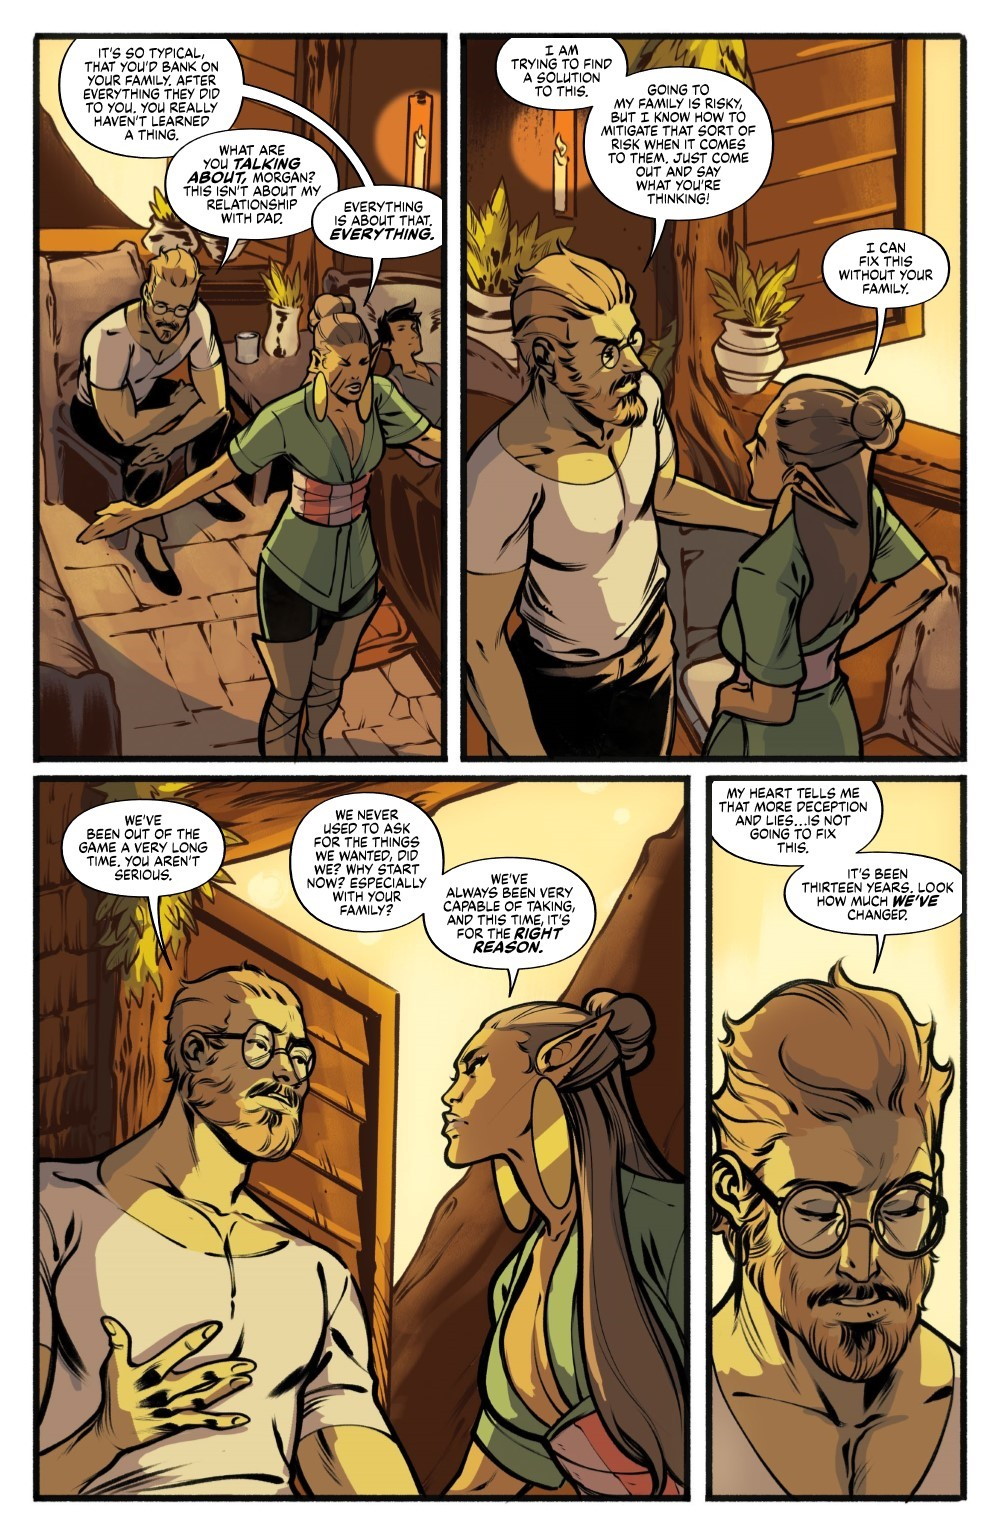 DRYAD-V2-TPB-REFERENCE-015 ComicList Previews: DRYAD VOLUME 2 TP